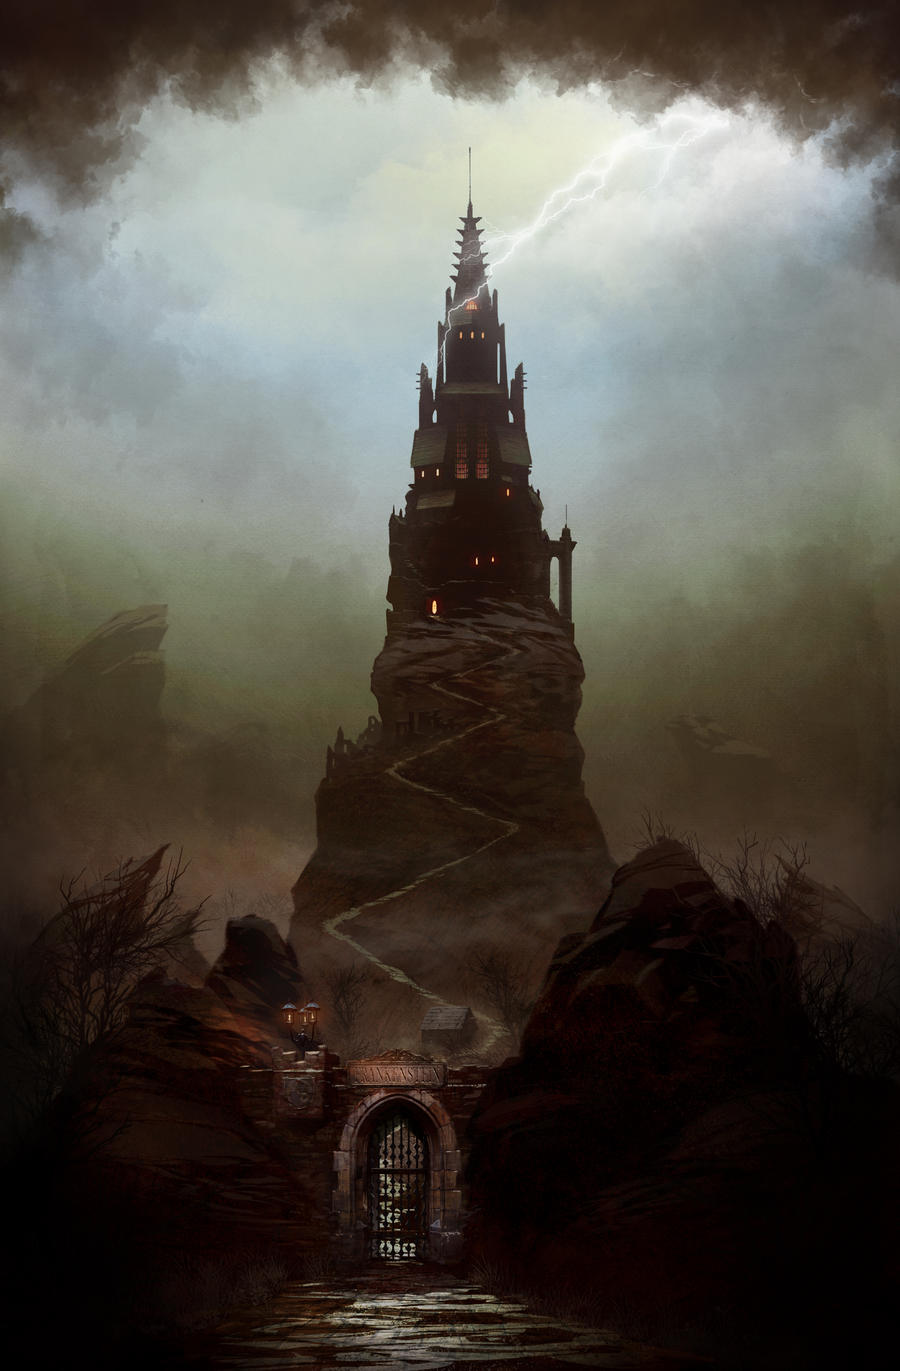 House of Frankenstein by Balaskas